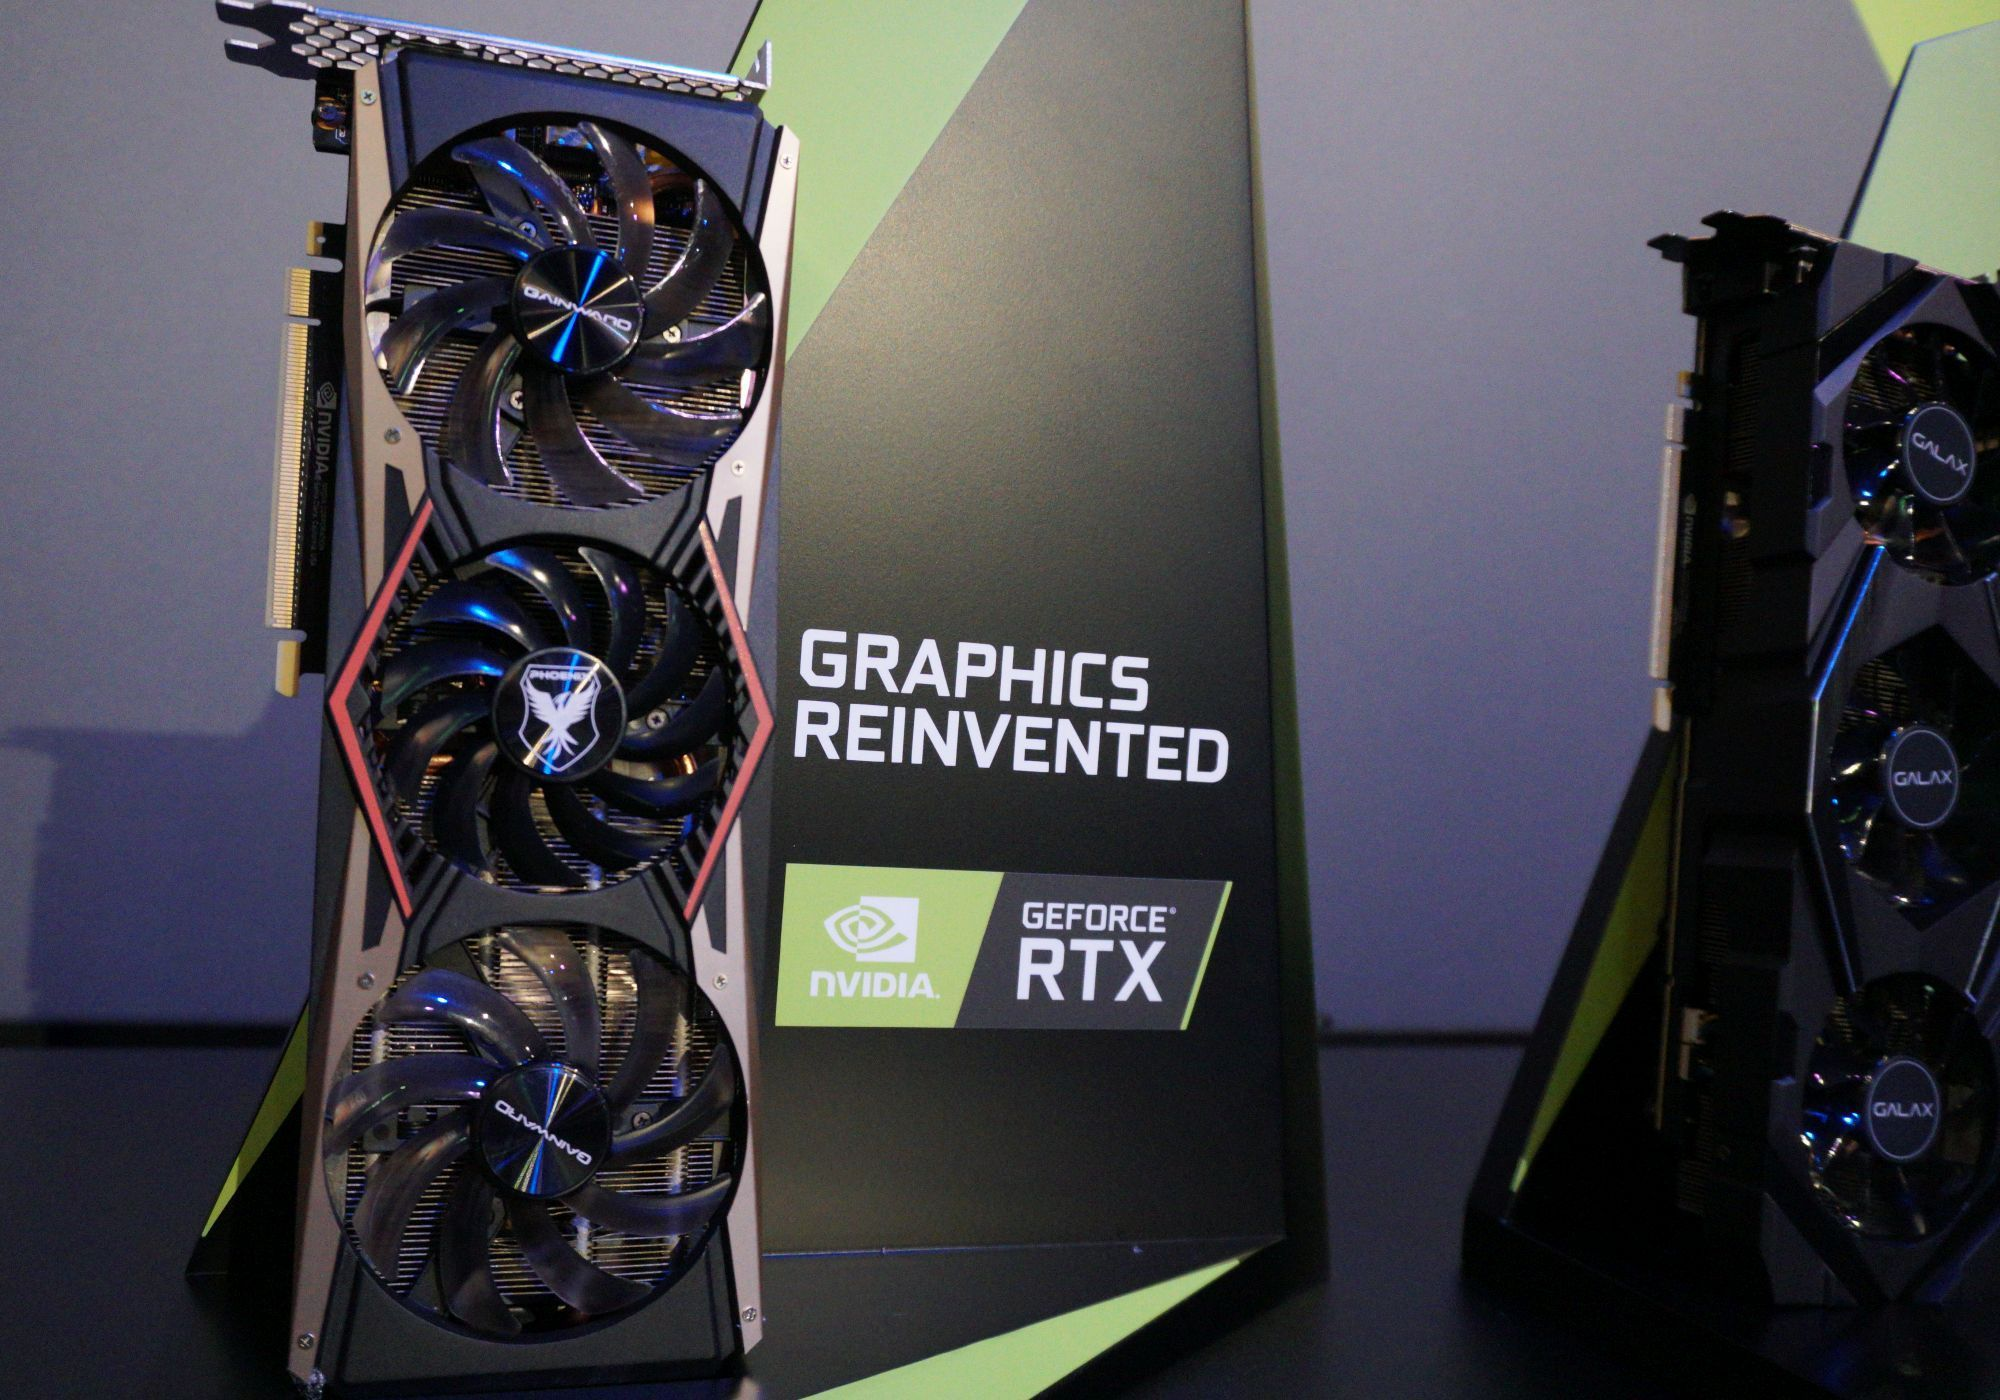 14 Nvidia GeForce RTX 20-series graphics card we saw at